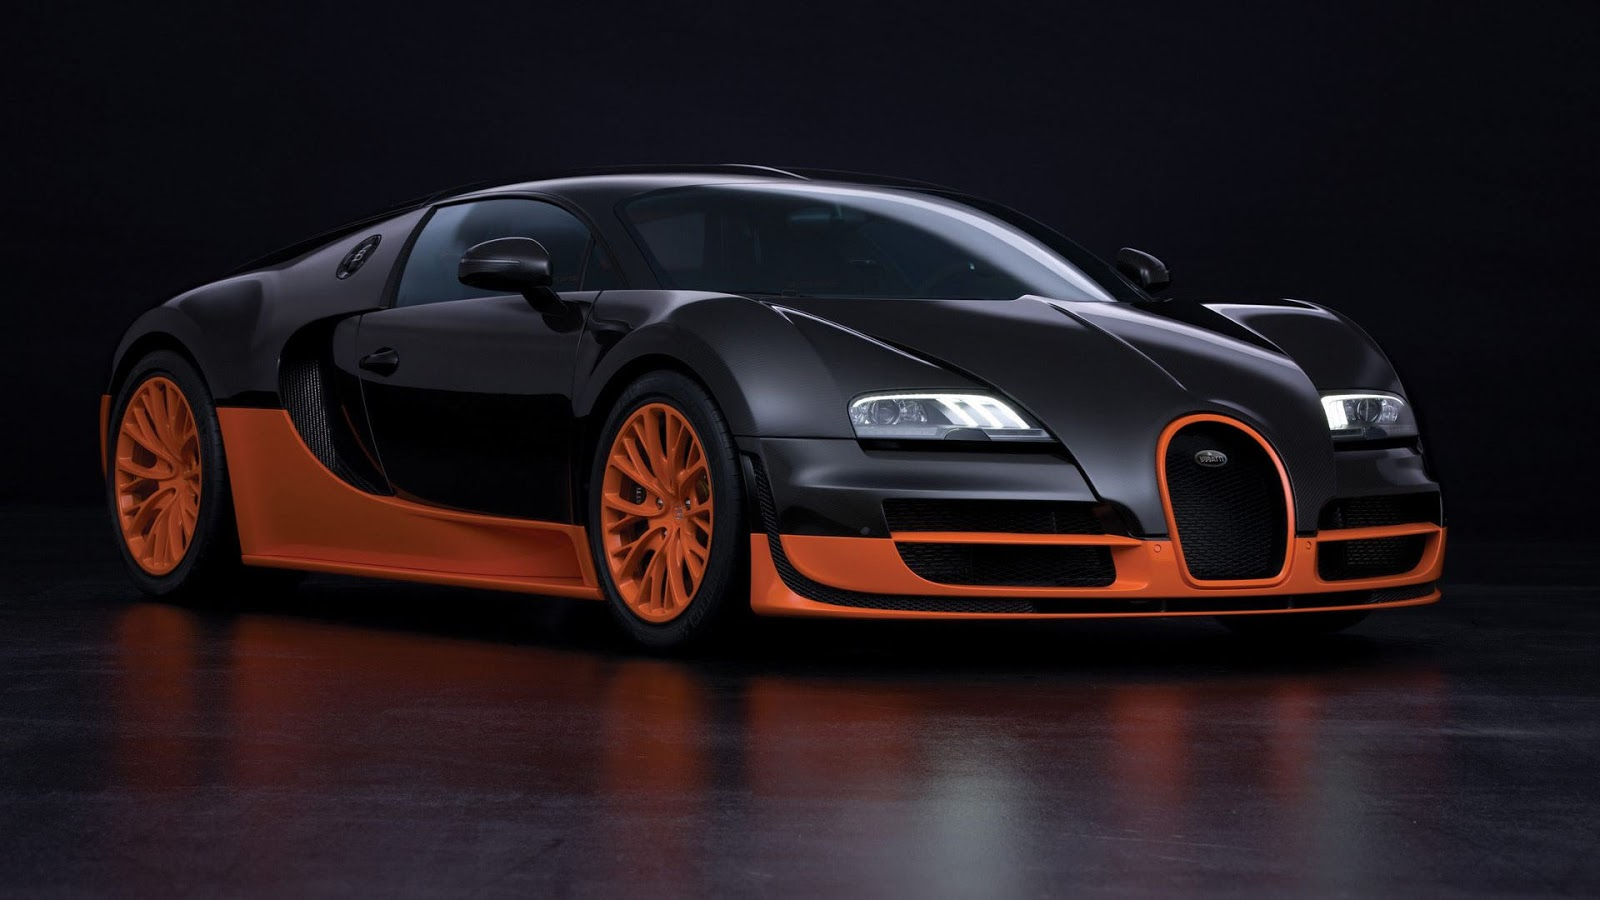 Wallpaper Bugatti Veyron Super Sport: Wallpapers Hd For Mac: The Best Bugatti Veyron Super Sport